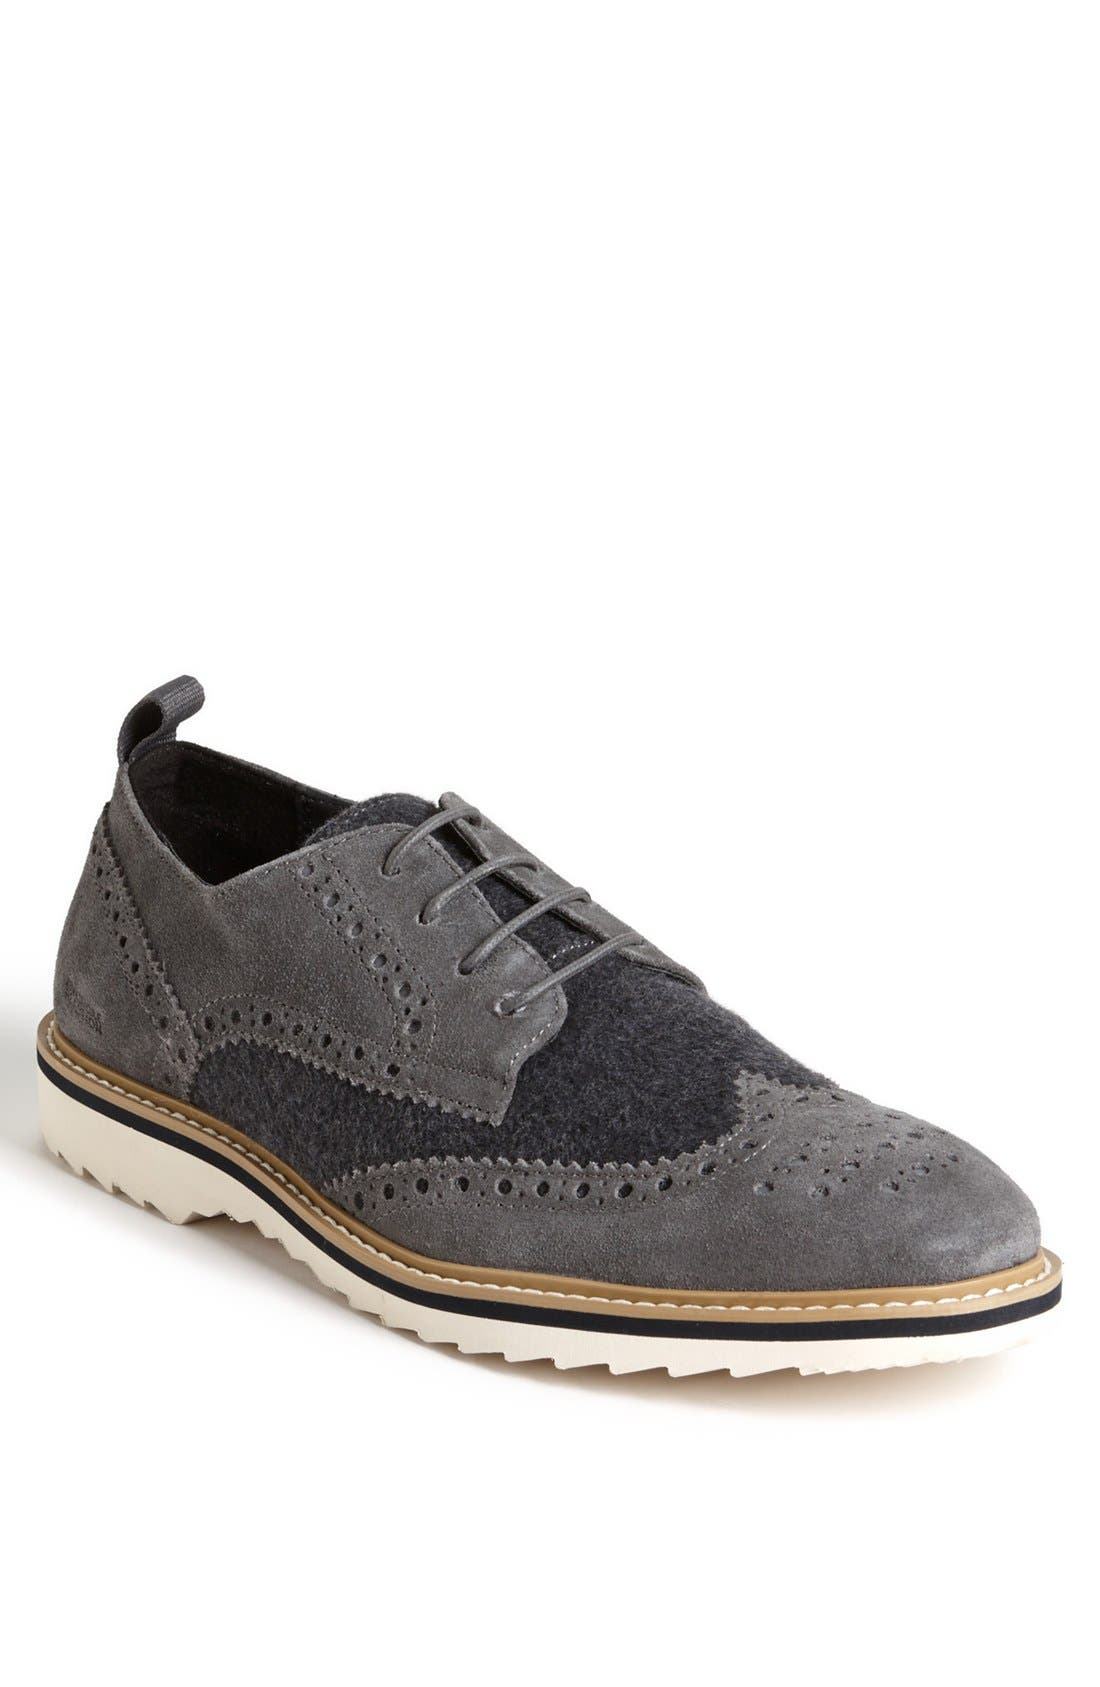 Main Image - Kenneth Cole Reaction 'Fever Pitch' Spectator Shoe